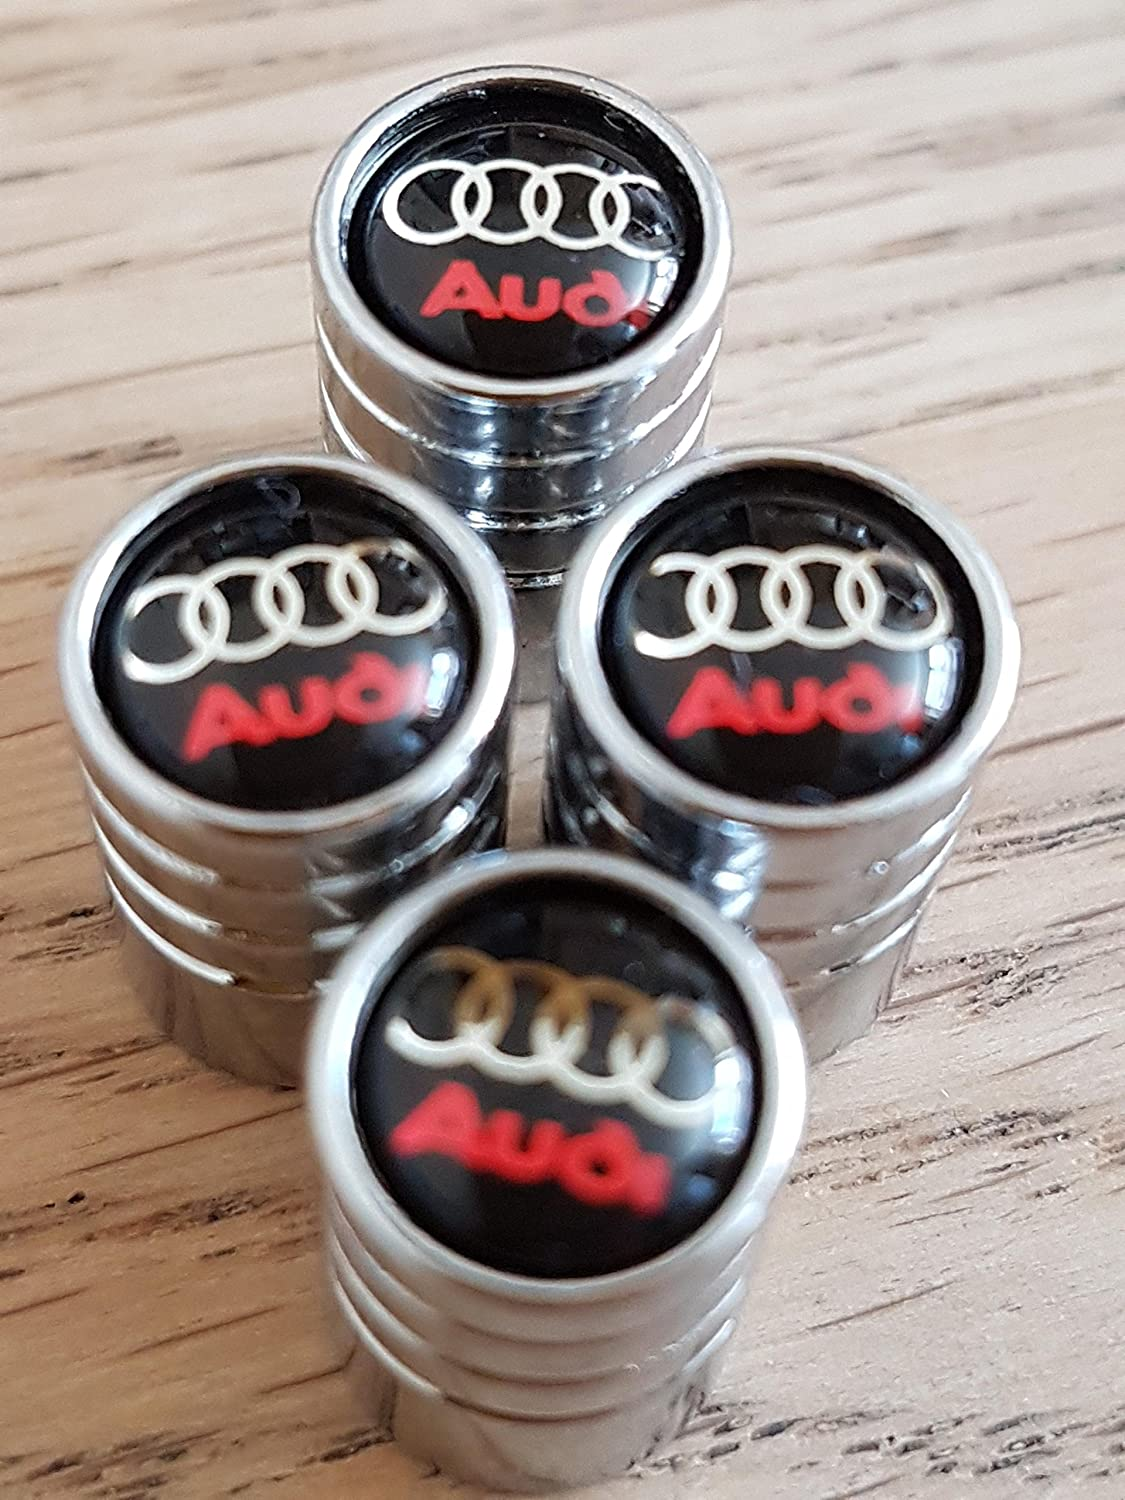 Speed Demons® AUDI CHROM DELUXE AUTO REIFEN DUST Ventilkappe EXKLUSIV FÜR US-A1 A3 A4 A5 A6 A7 A8 Q3 Q5 Q7 R8 TT RS E-TRON S LINE RS4 RS5 RS6 Speed Demons ®